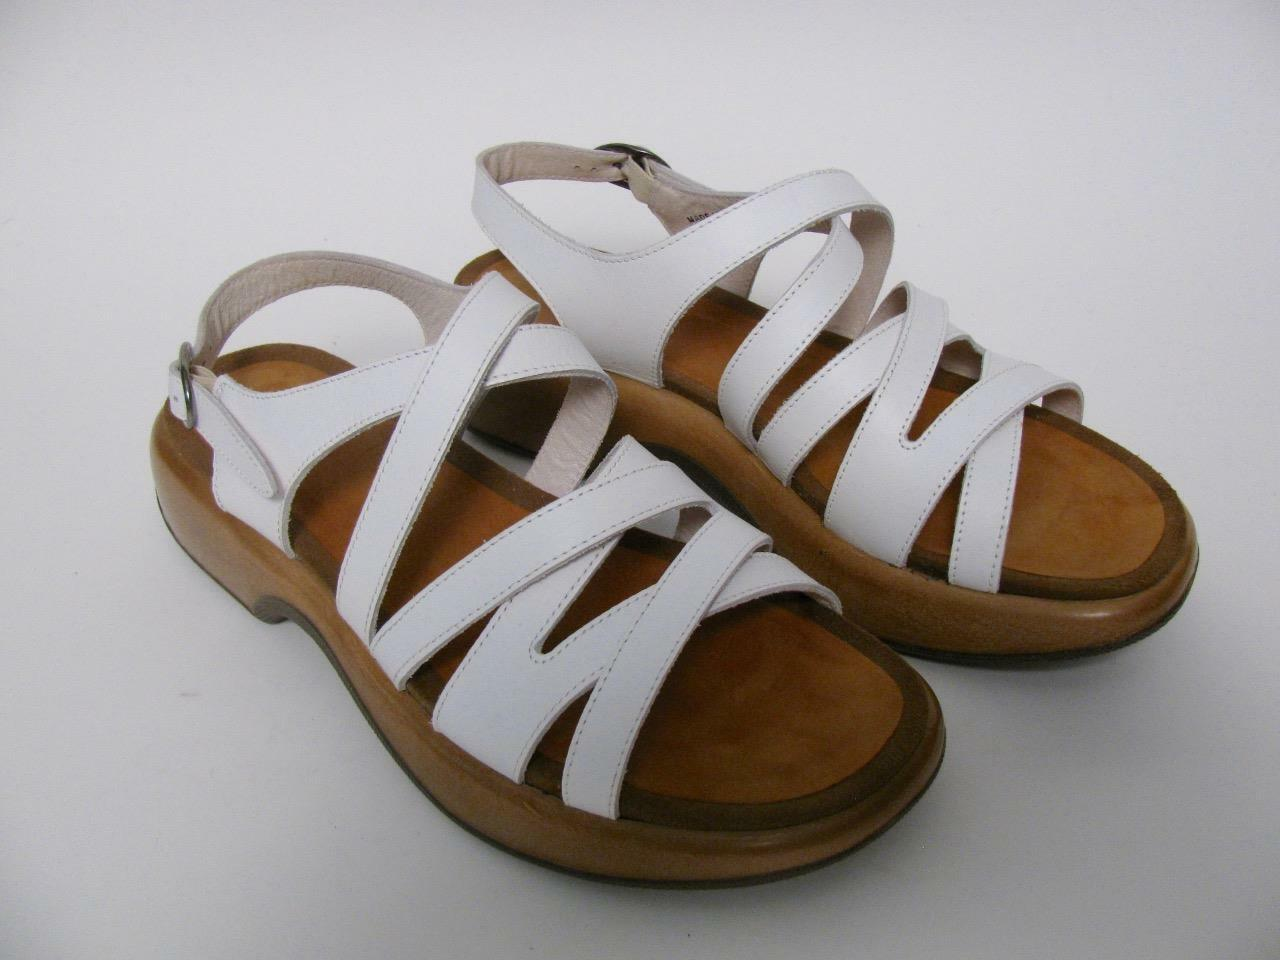 DANSKO LOLITA LADIES WHITE LEATHER STRAPPY STEVIE DANI SANDALS SHOES42   12